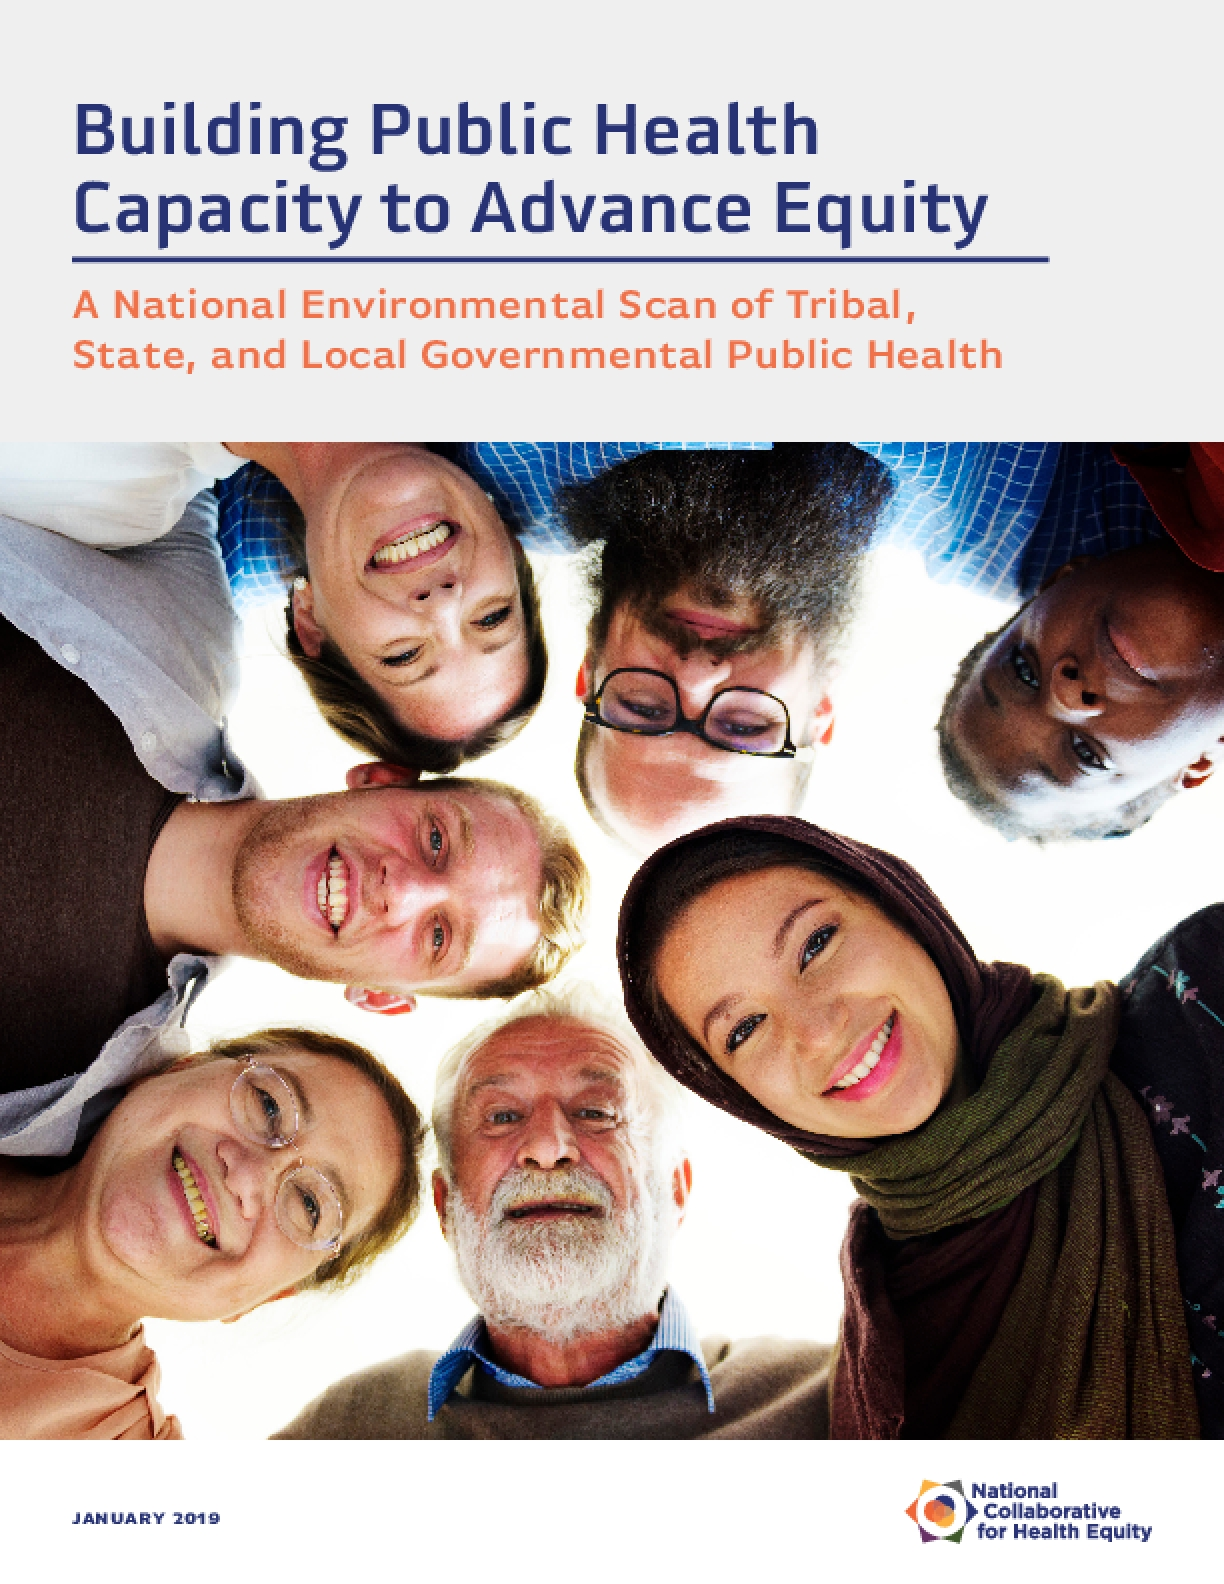 Building Public Health Capacity to Advance Equity: A National Environmental Scan of Tribal, State, and Local Governmental Public Health